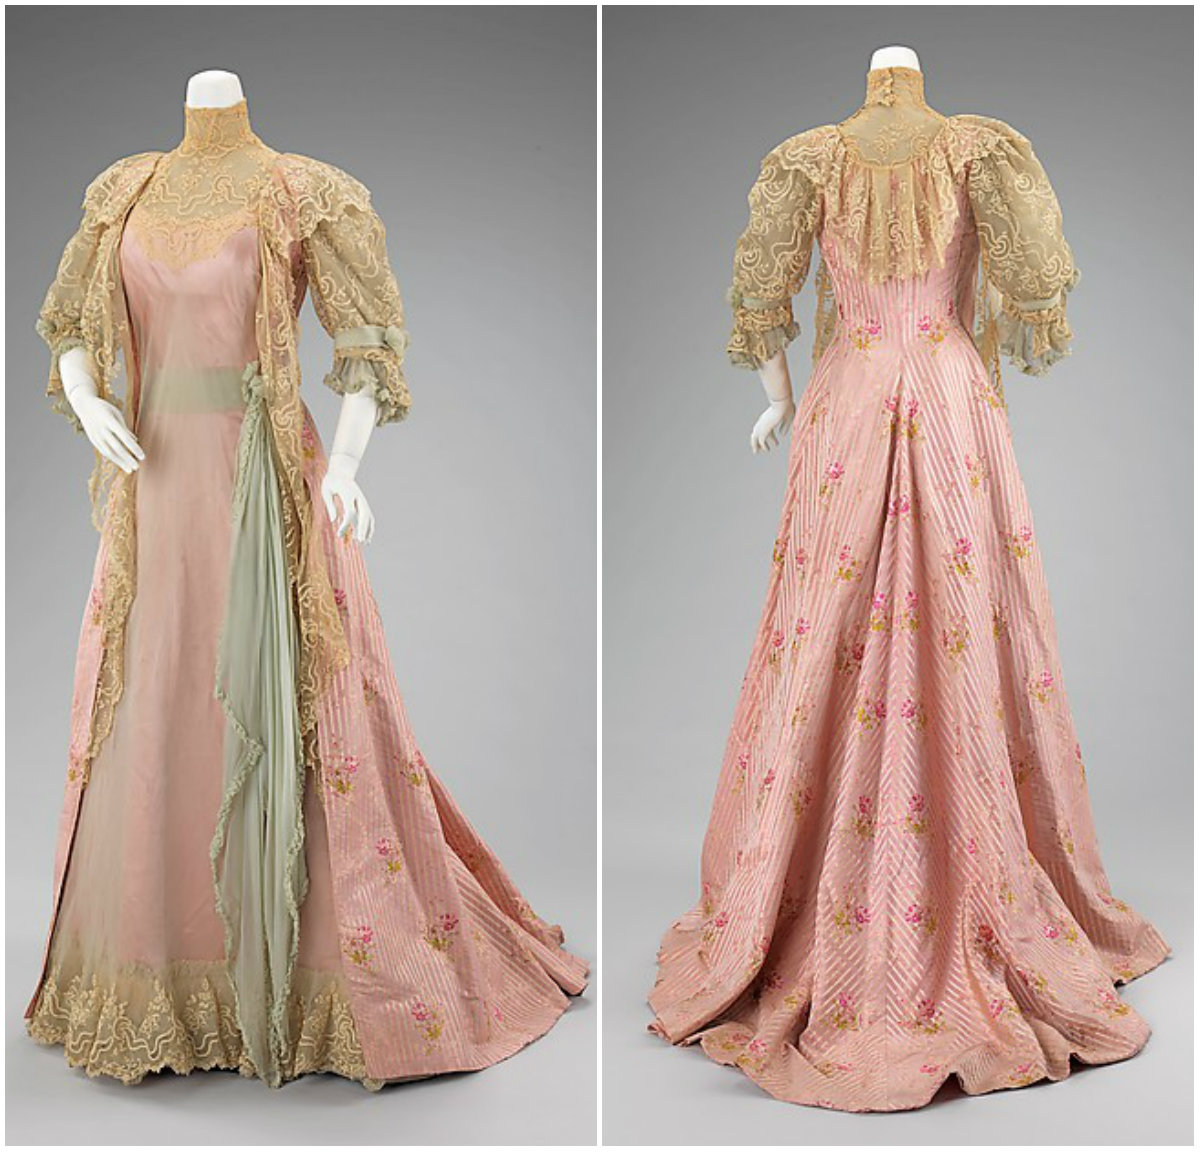 1901. Tea Gown. Silk. metmuseum